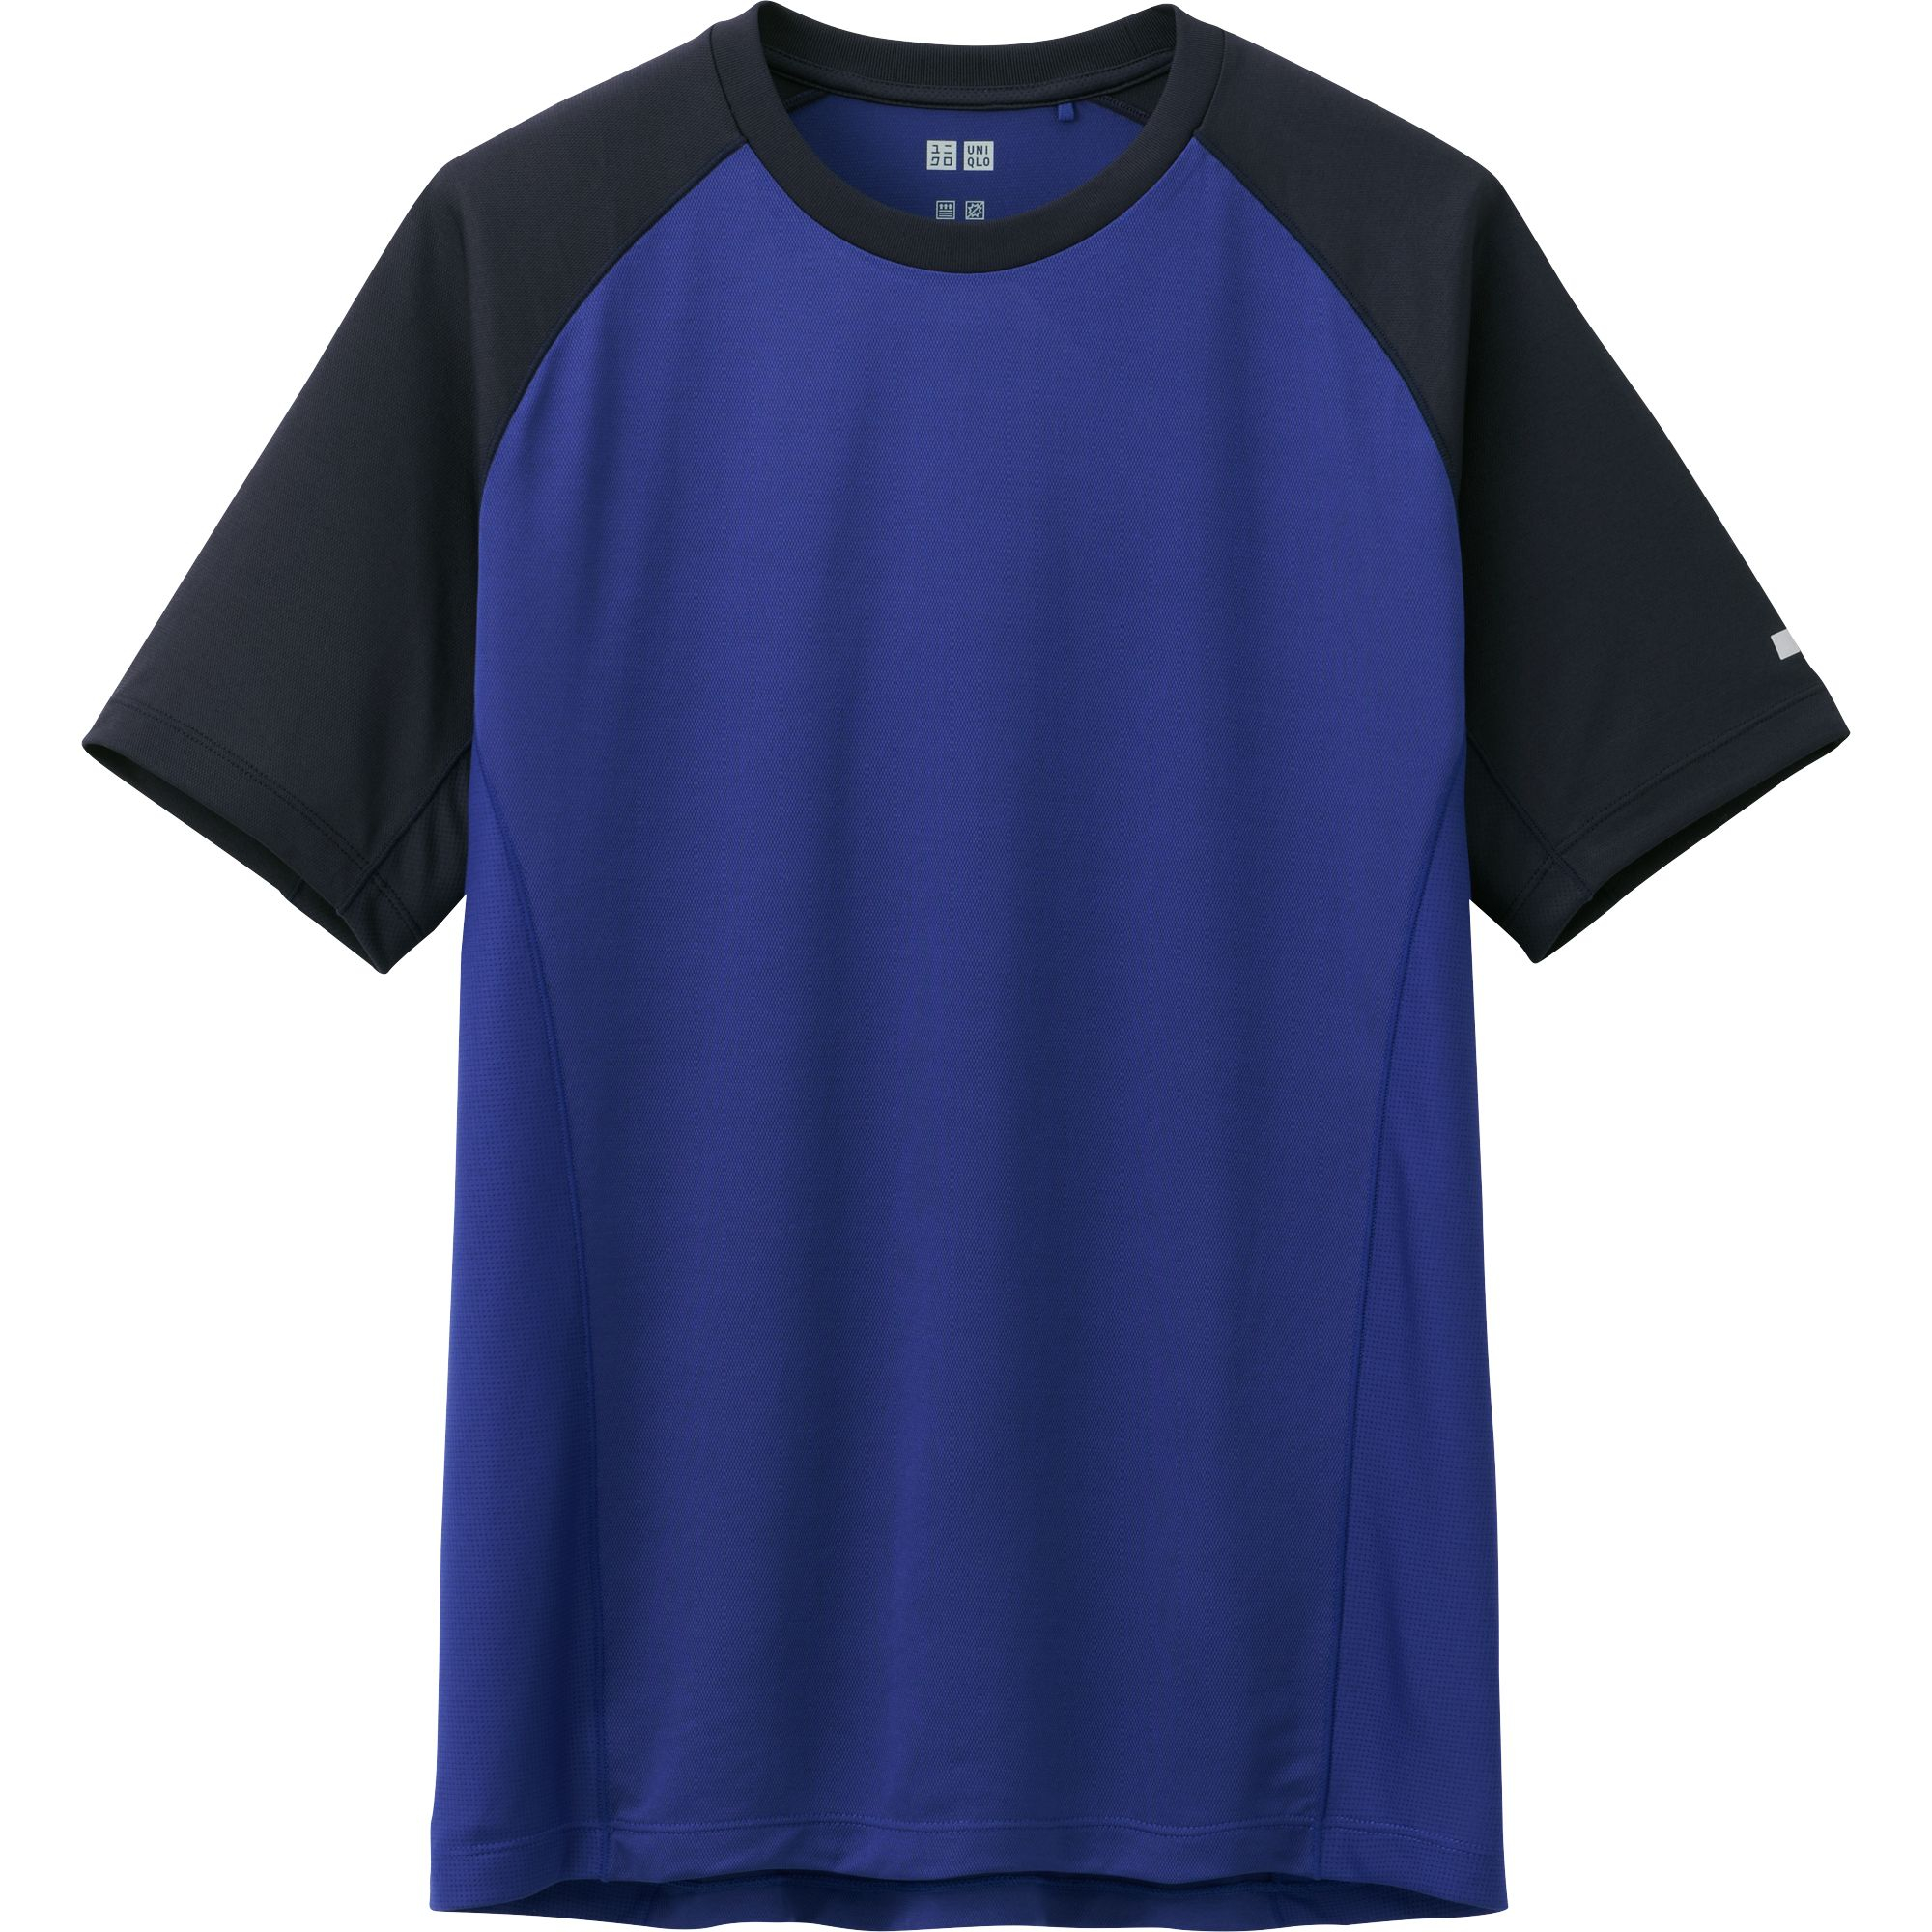 Uniqlo men dry mesh crew neck short sleeve t shirt in blue for Uniqlo t shirt sizing